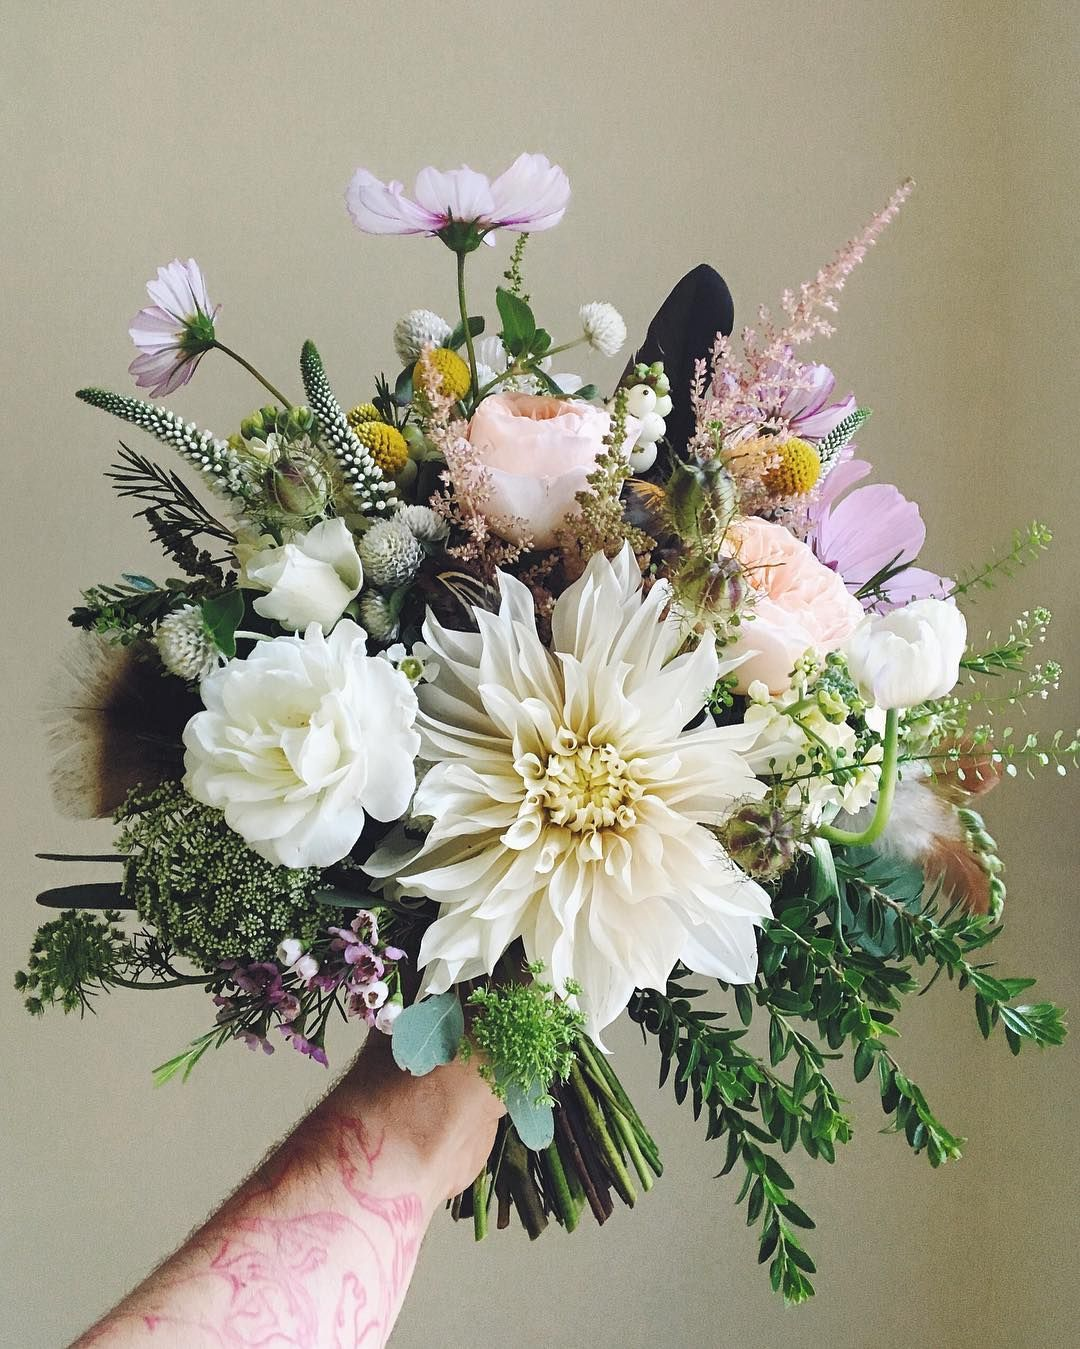 997 Likes 7 Comments Kwiaciarnia Kwiaty Amp Miut Kwiatyimiut On Instagram Kwiatyimiut Kwiatysapiekne Bukiet Floral Wreath Floral Table Decorations